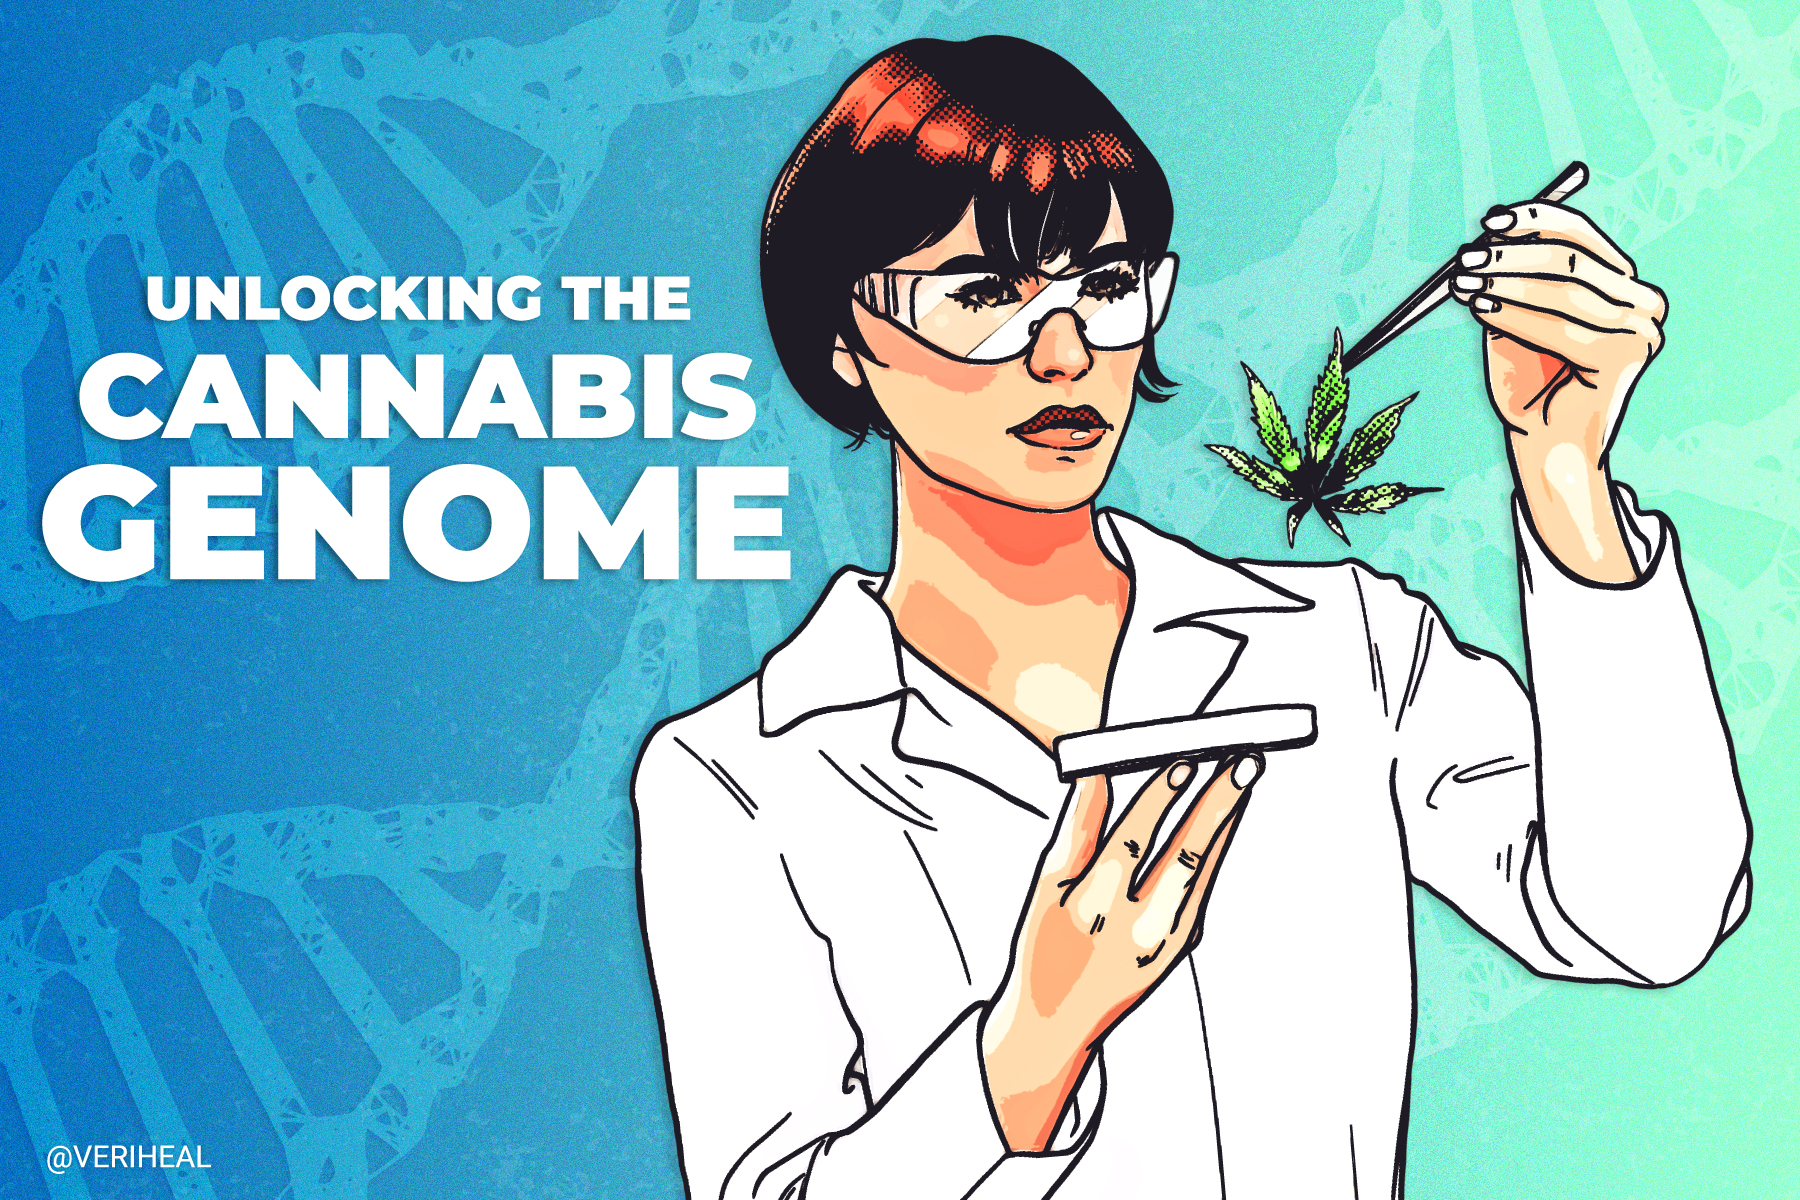 What Researchers Learned From Unlocking the Cannabis Genome